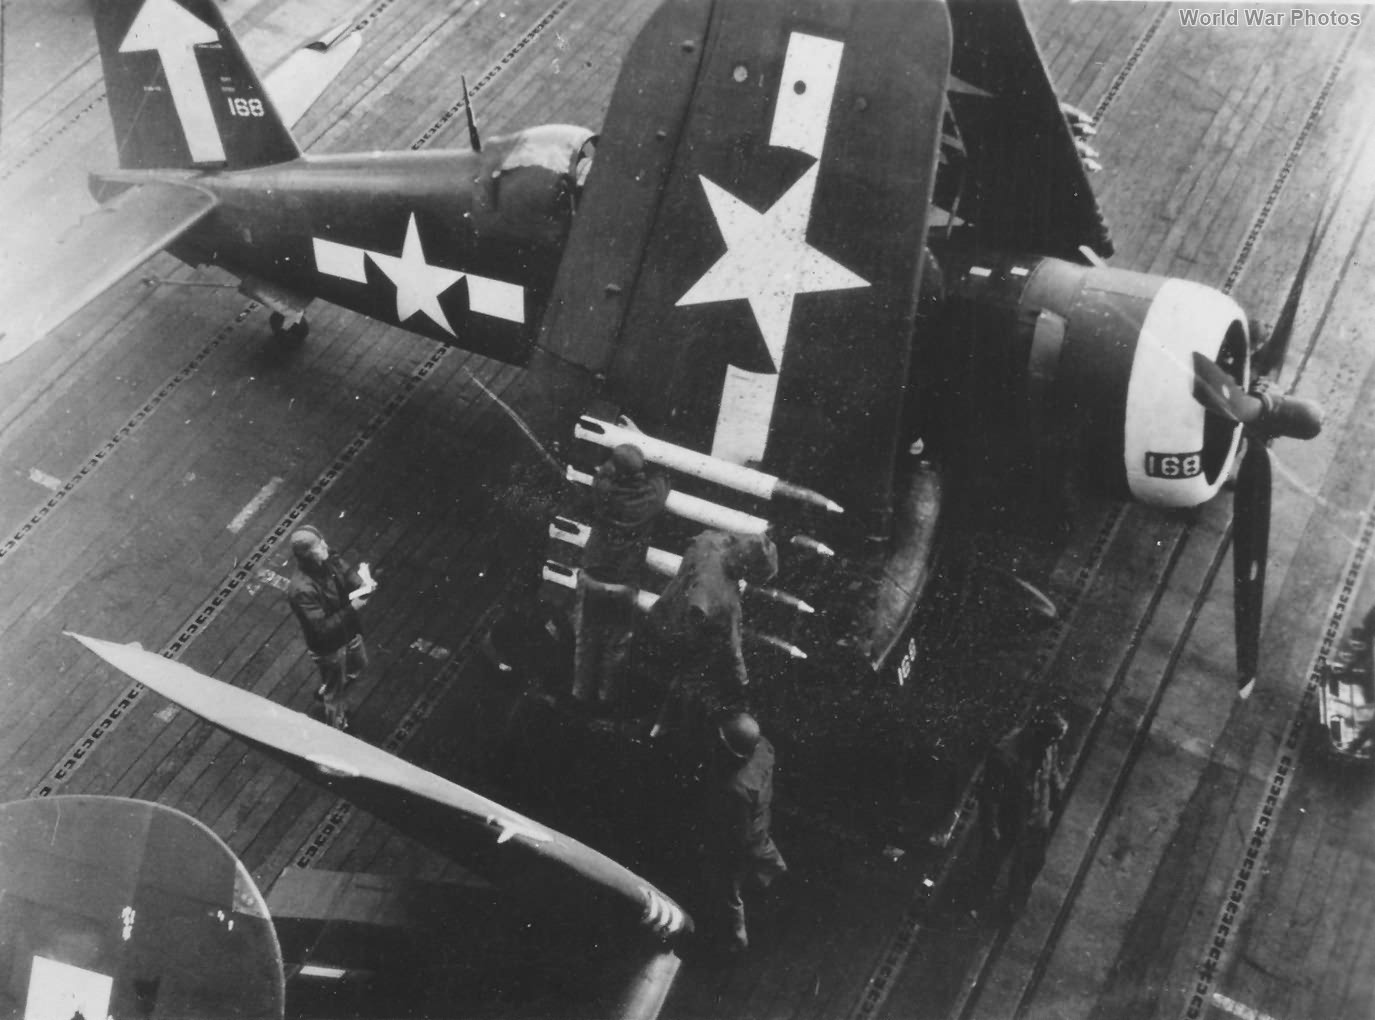 F4U-1D 168 of VF-84 being armed with rockets